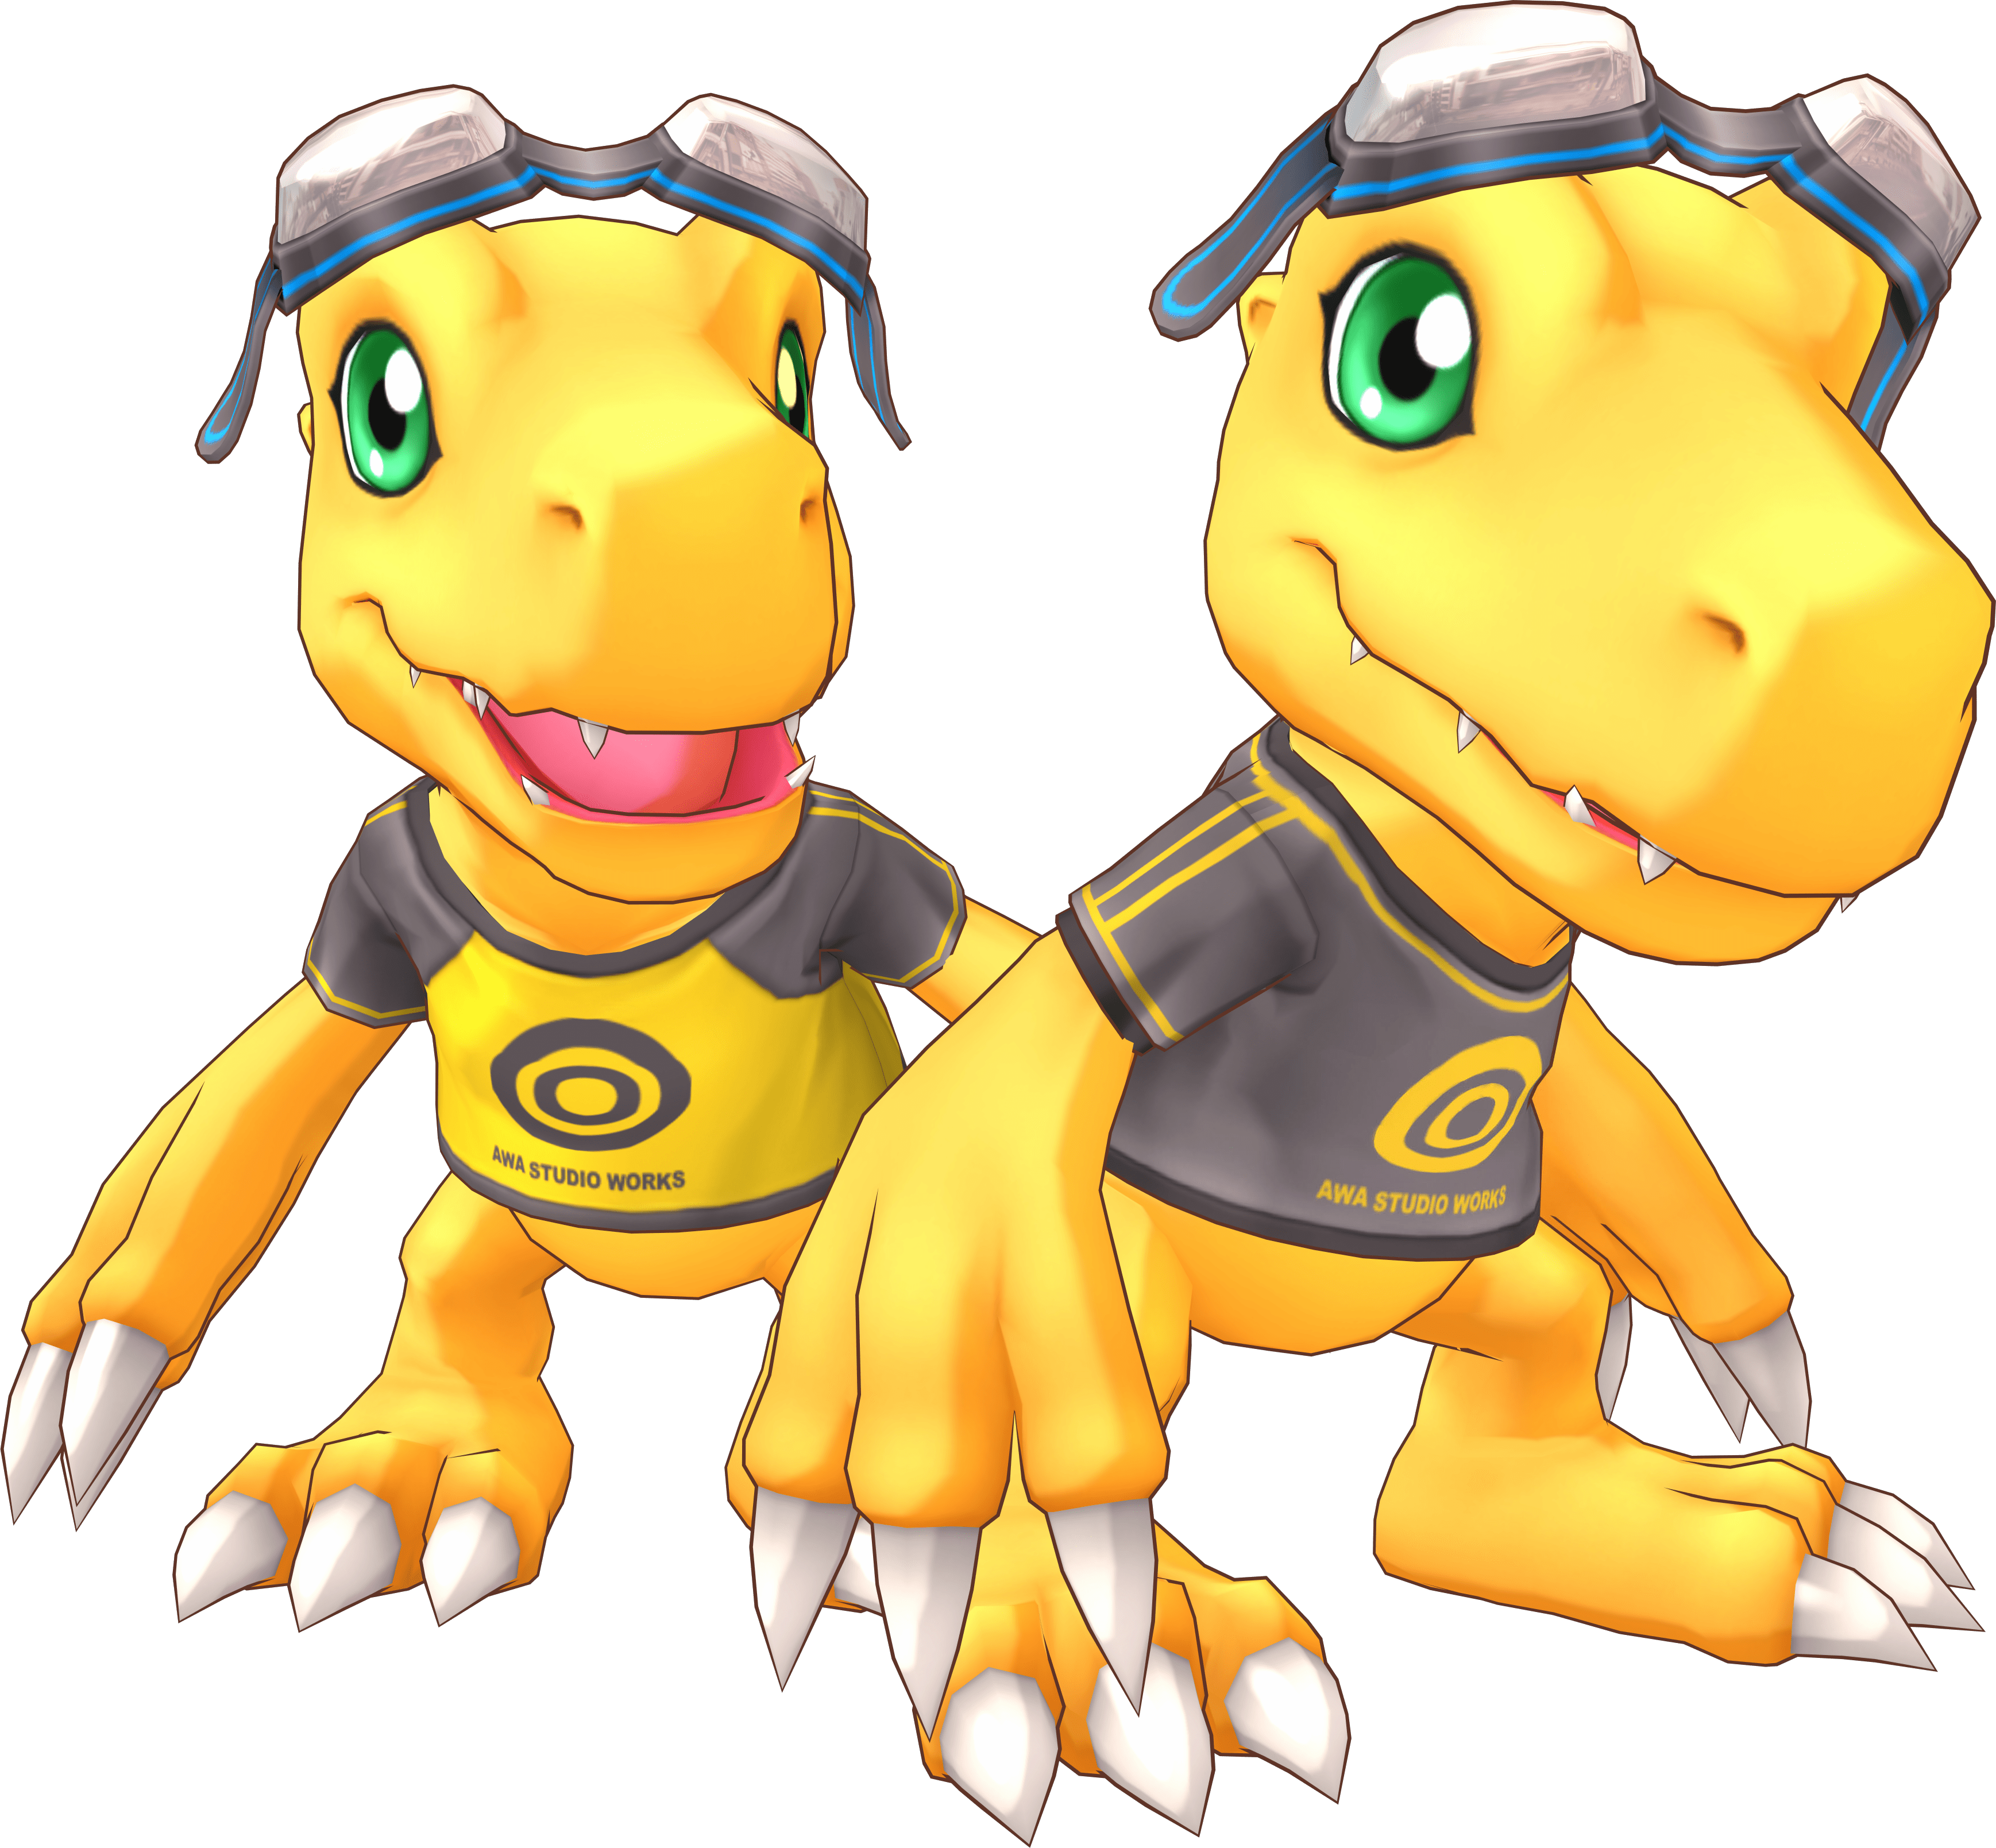 Digimon Story: Cyber Sleuth Western Release Date